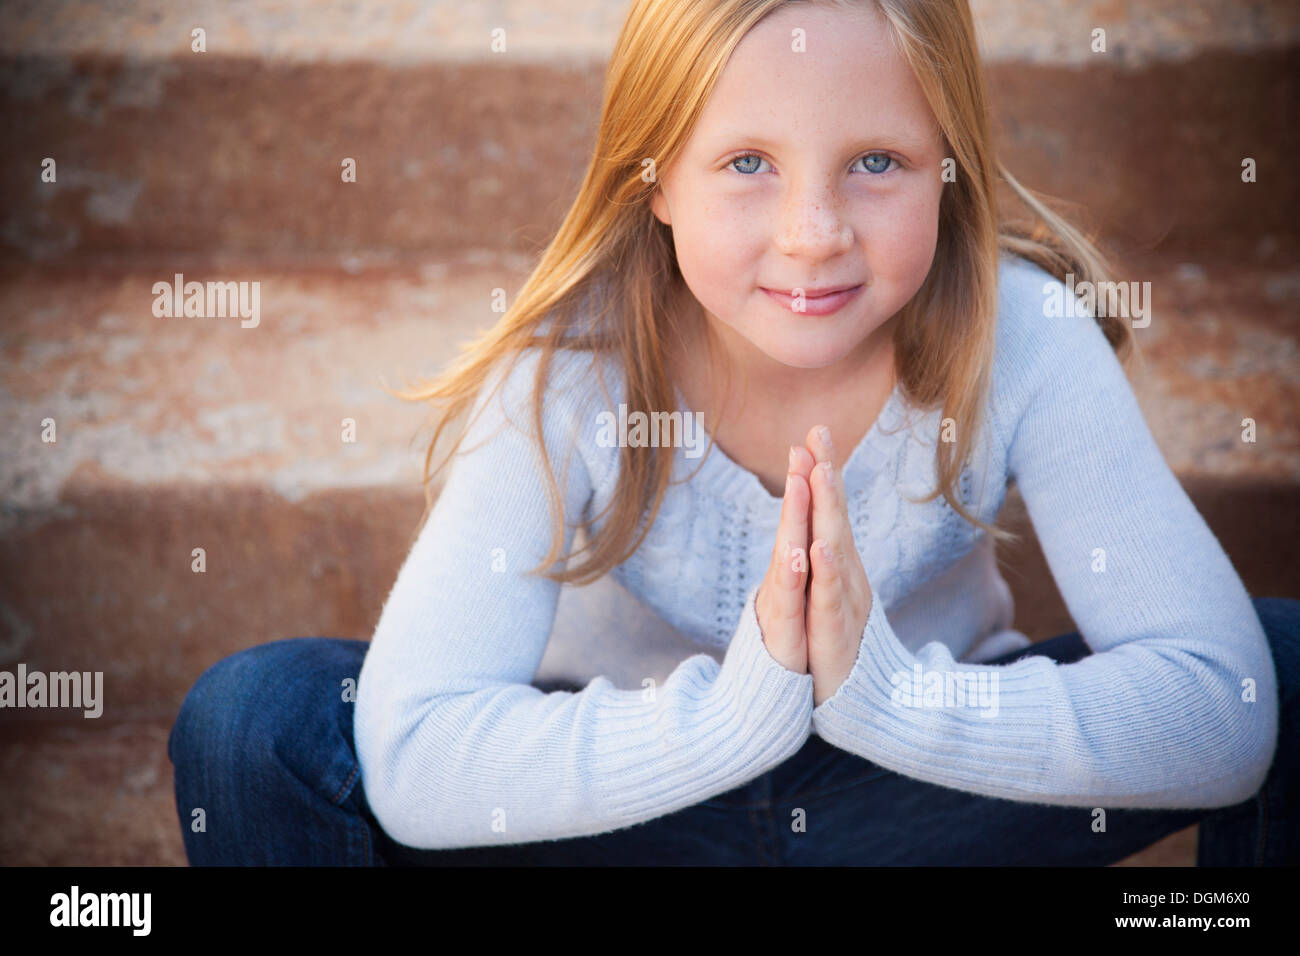 A young girl seated on the steps of a garden, with her hands pressed, palms together. - Stock Image